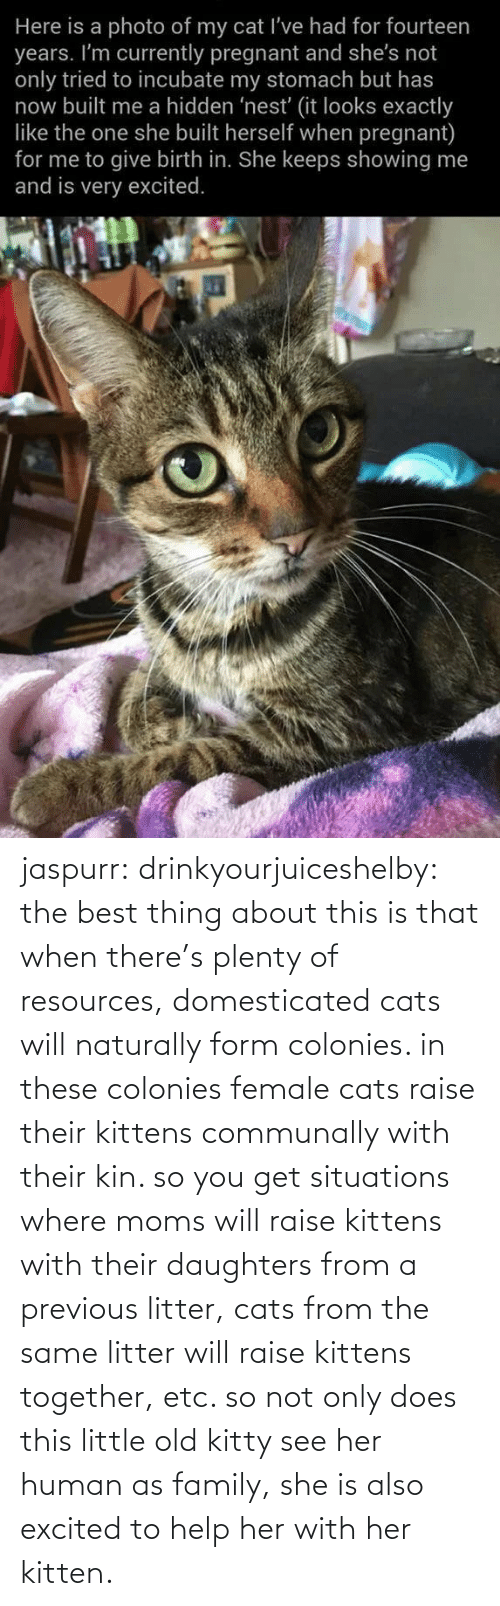 The Same: jaspurr:  drinkyourjuiceshelby:    the best thing about this is that when there's plenty of resources, domesticated cats will naturally form colonies. in these colonies female cats raise their kittens communally with their kin. so you get situations where moms will raise kittens with their daughters from a previous litter, cats from the same litter will raise kittens together, etc. so not only does this little old kitty see her human as family, she is also excited to help her with her kitten.